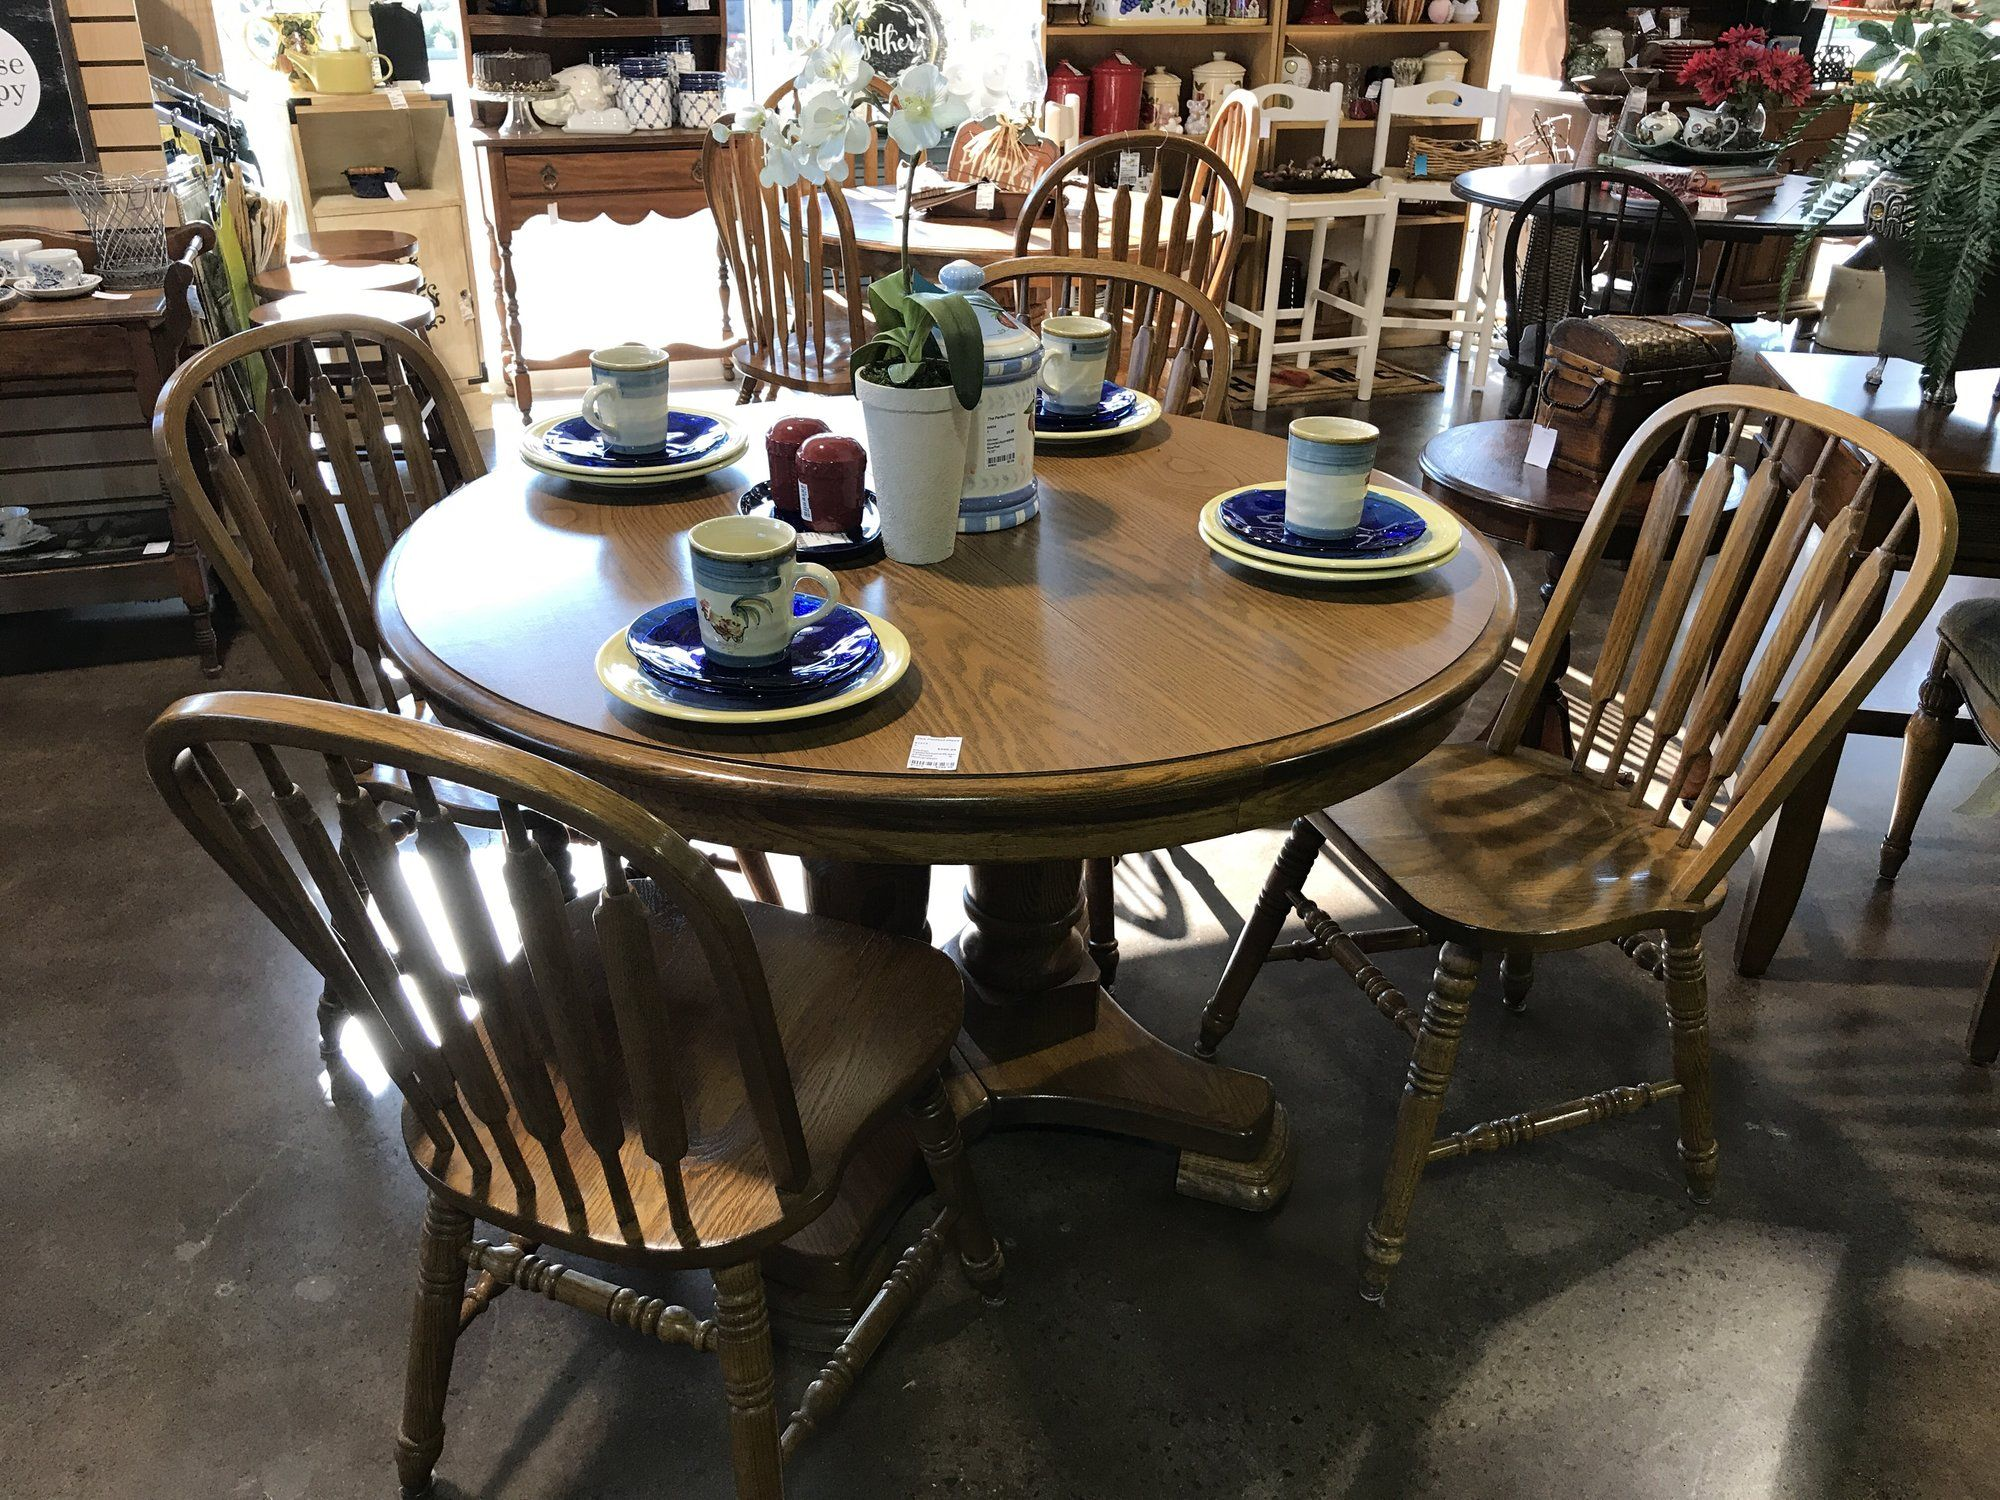 Richardson Brothers Furniture Has Been Making Quality Furniture Forever  (almost). This Table Set